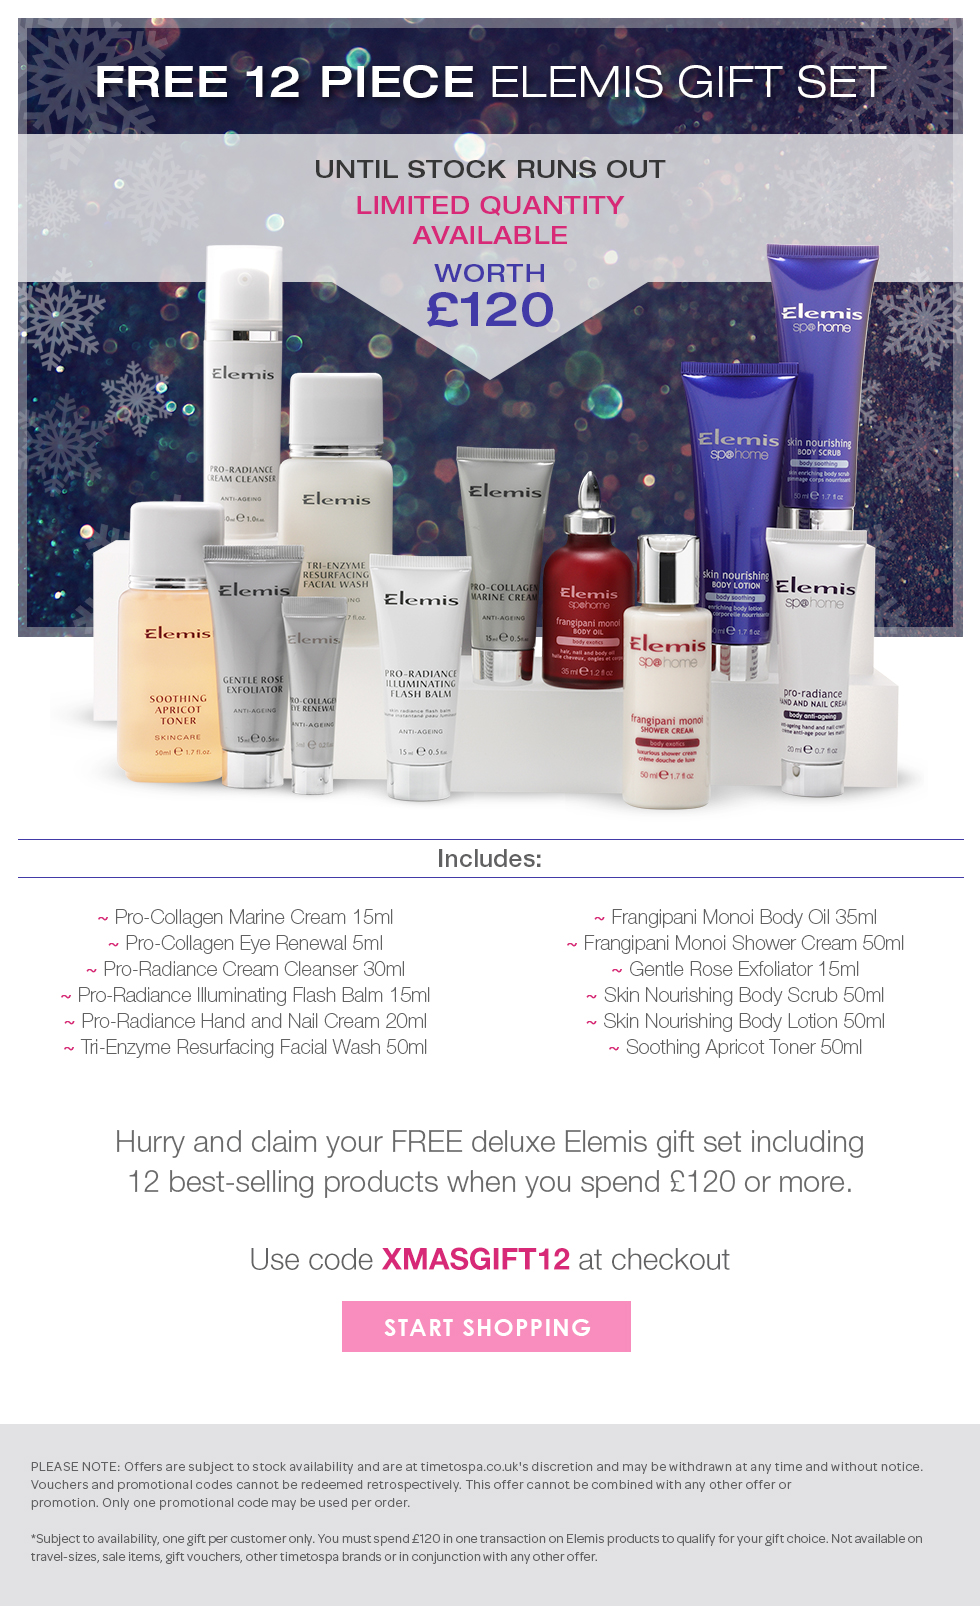 Free Deluxe 12 Piece Elemis Gift Set Worth £120